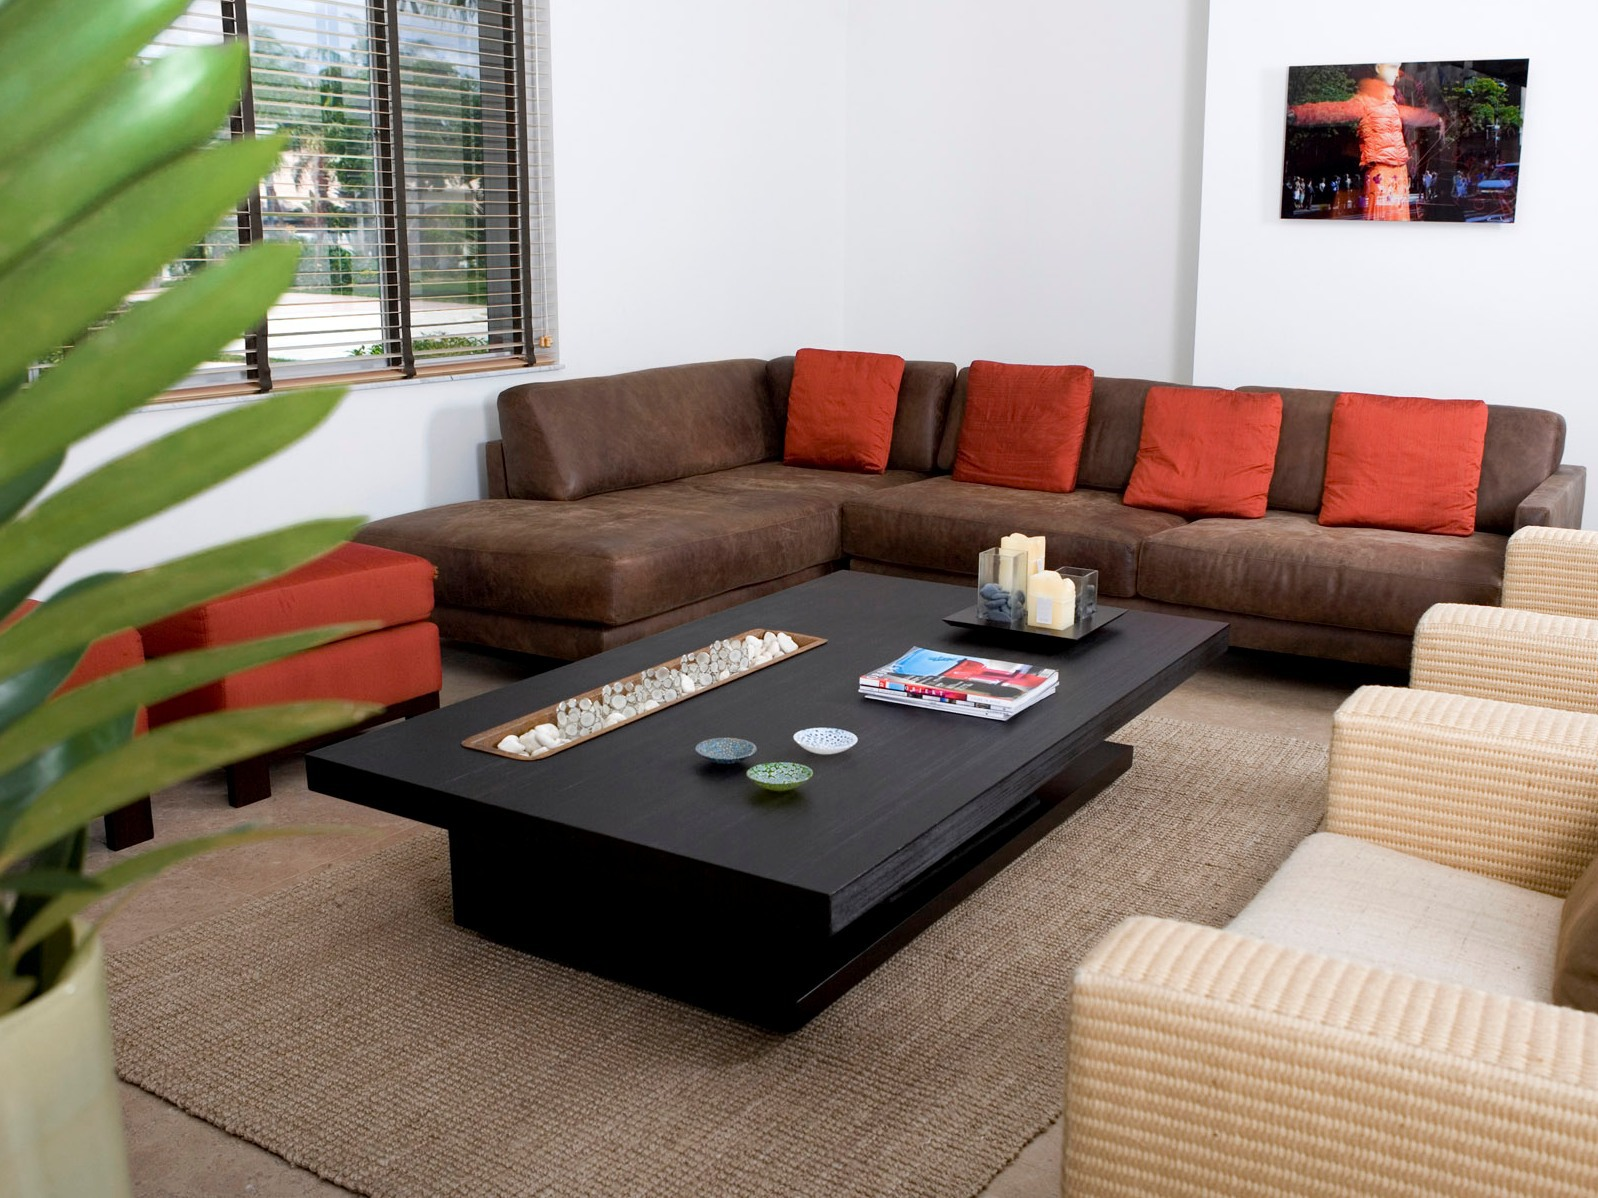 Large coffee table design images photos pictures for Large coffee table